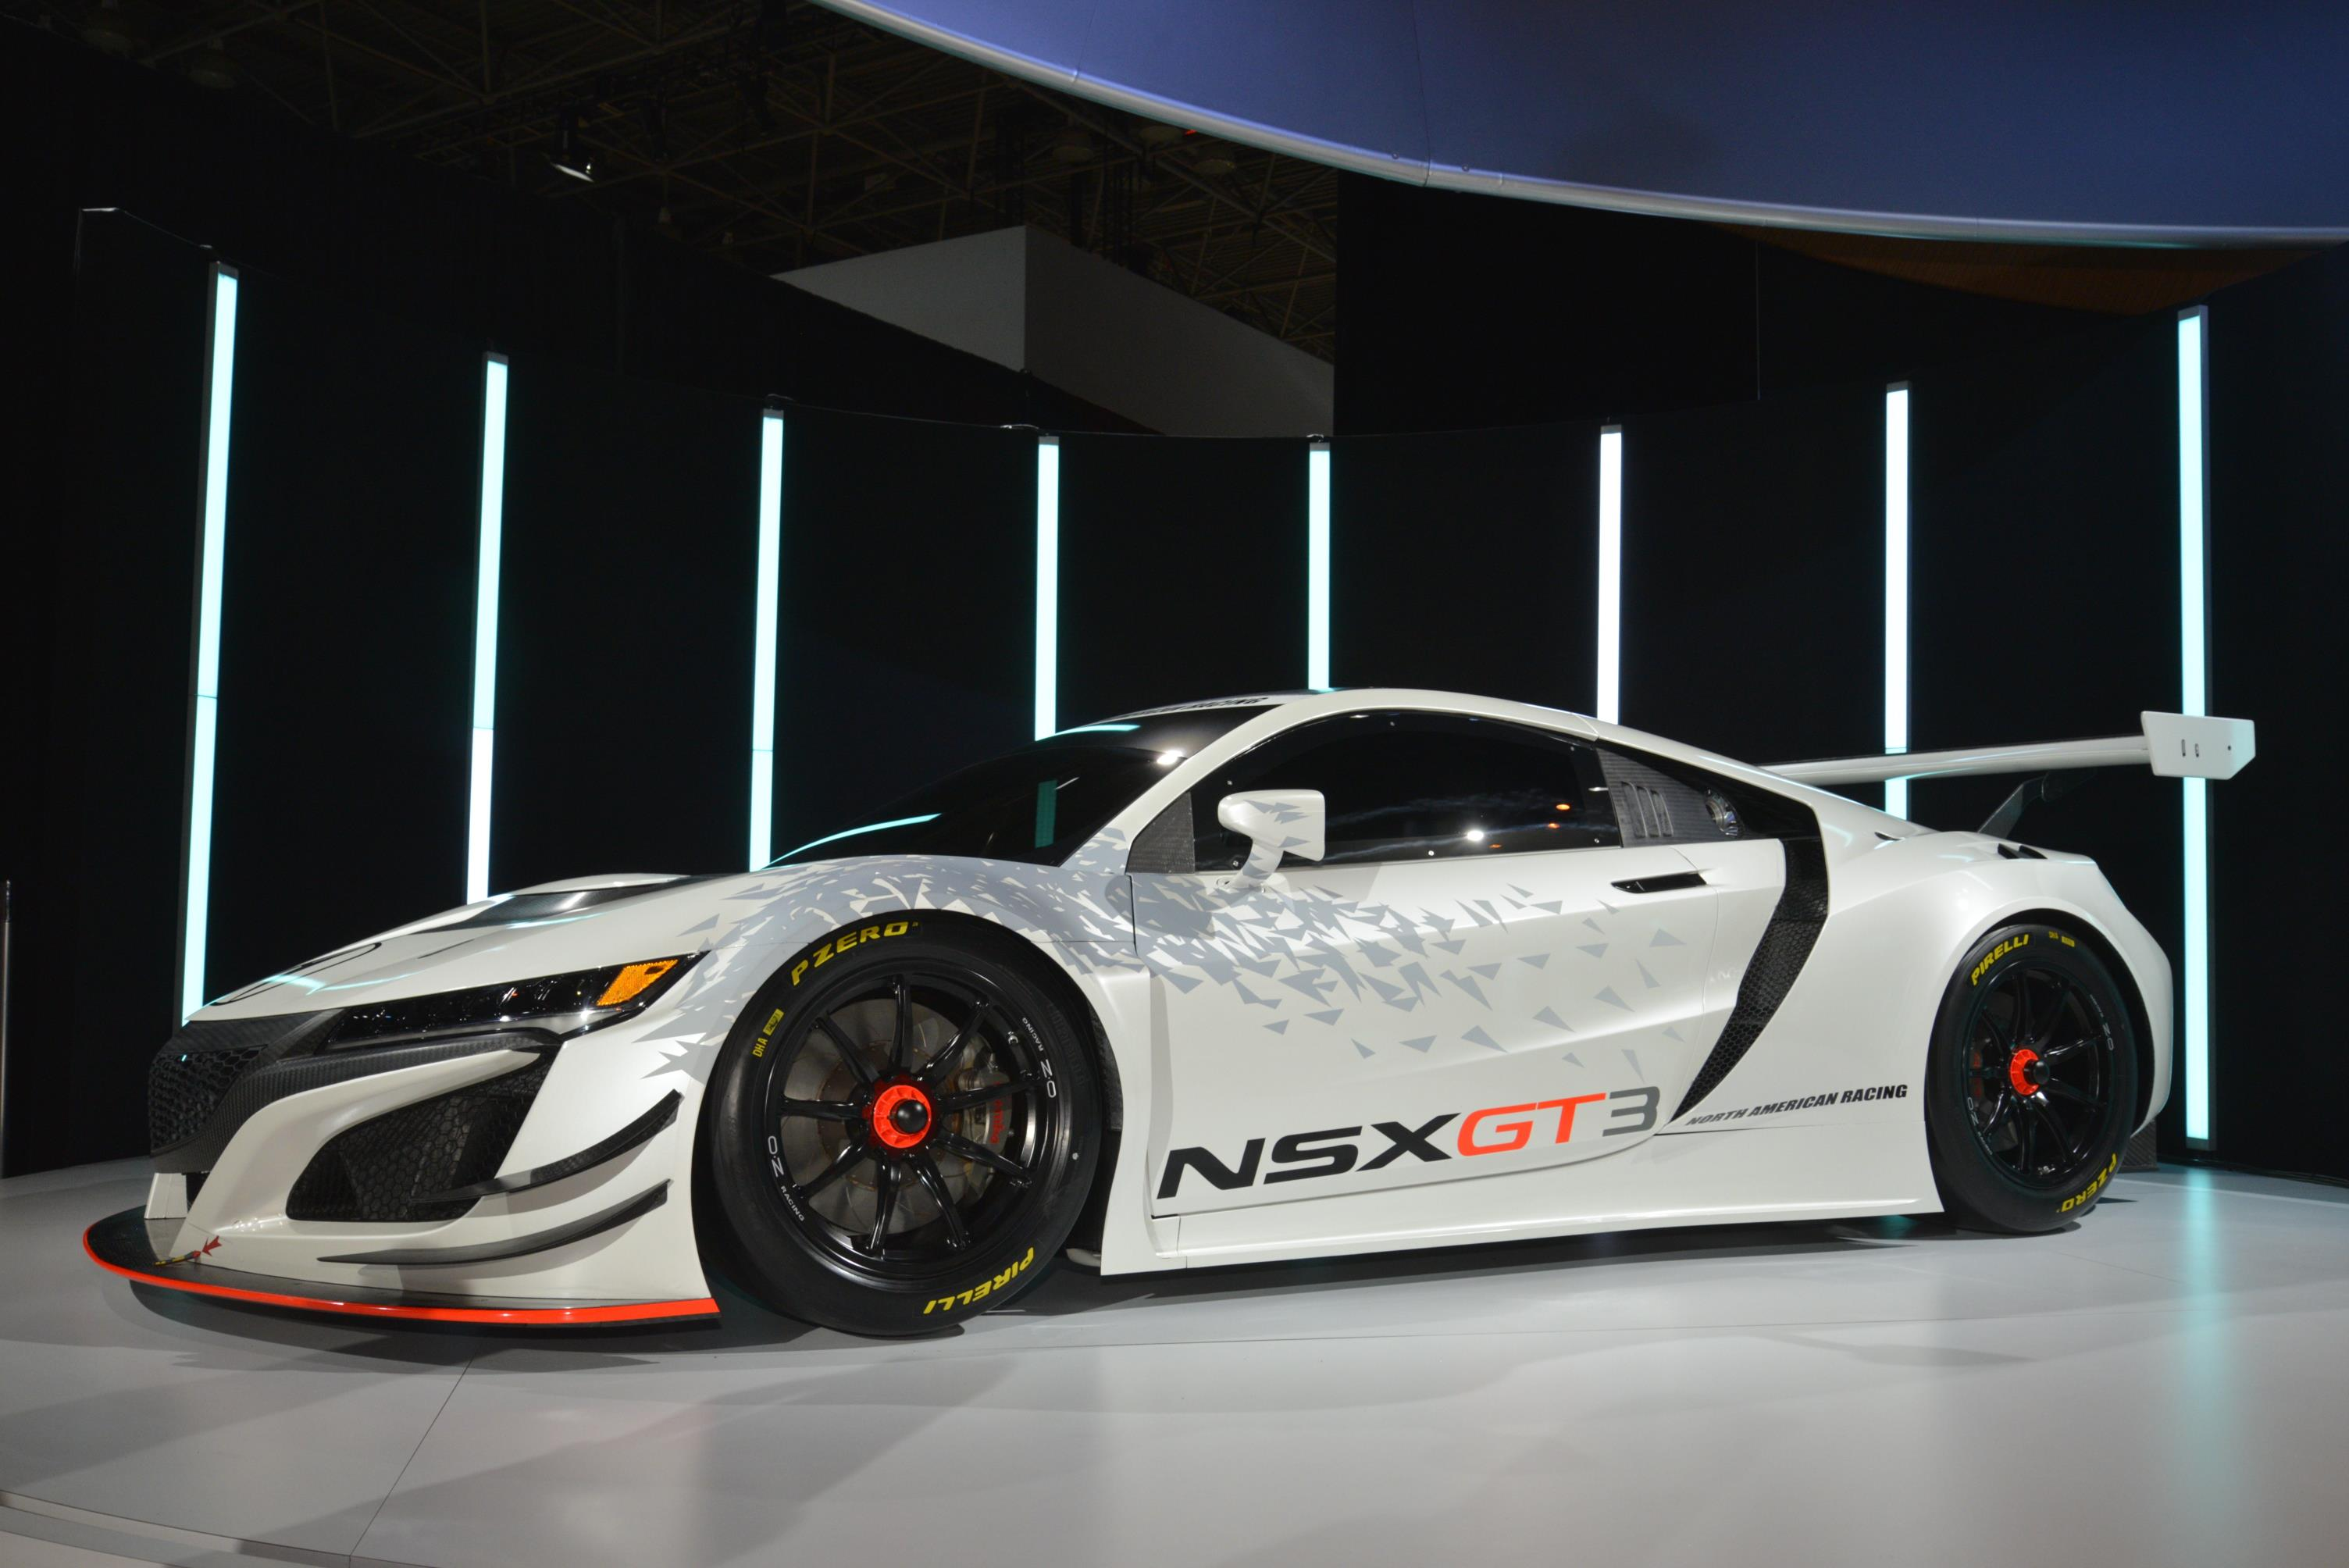 2017 Acura NSX GT3 Racecar Ditches Hybrid and AWD Systems - autoevolution